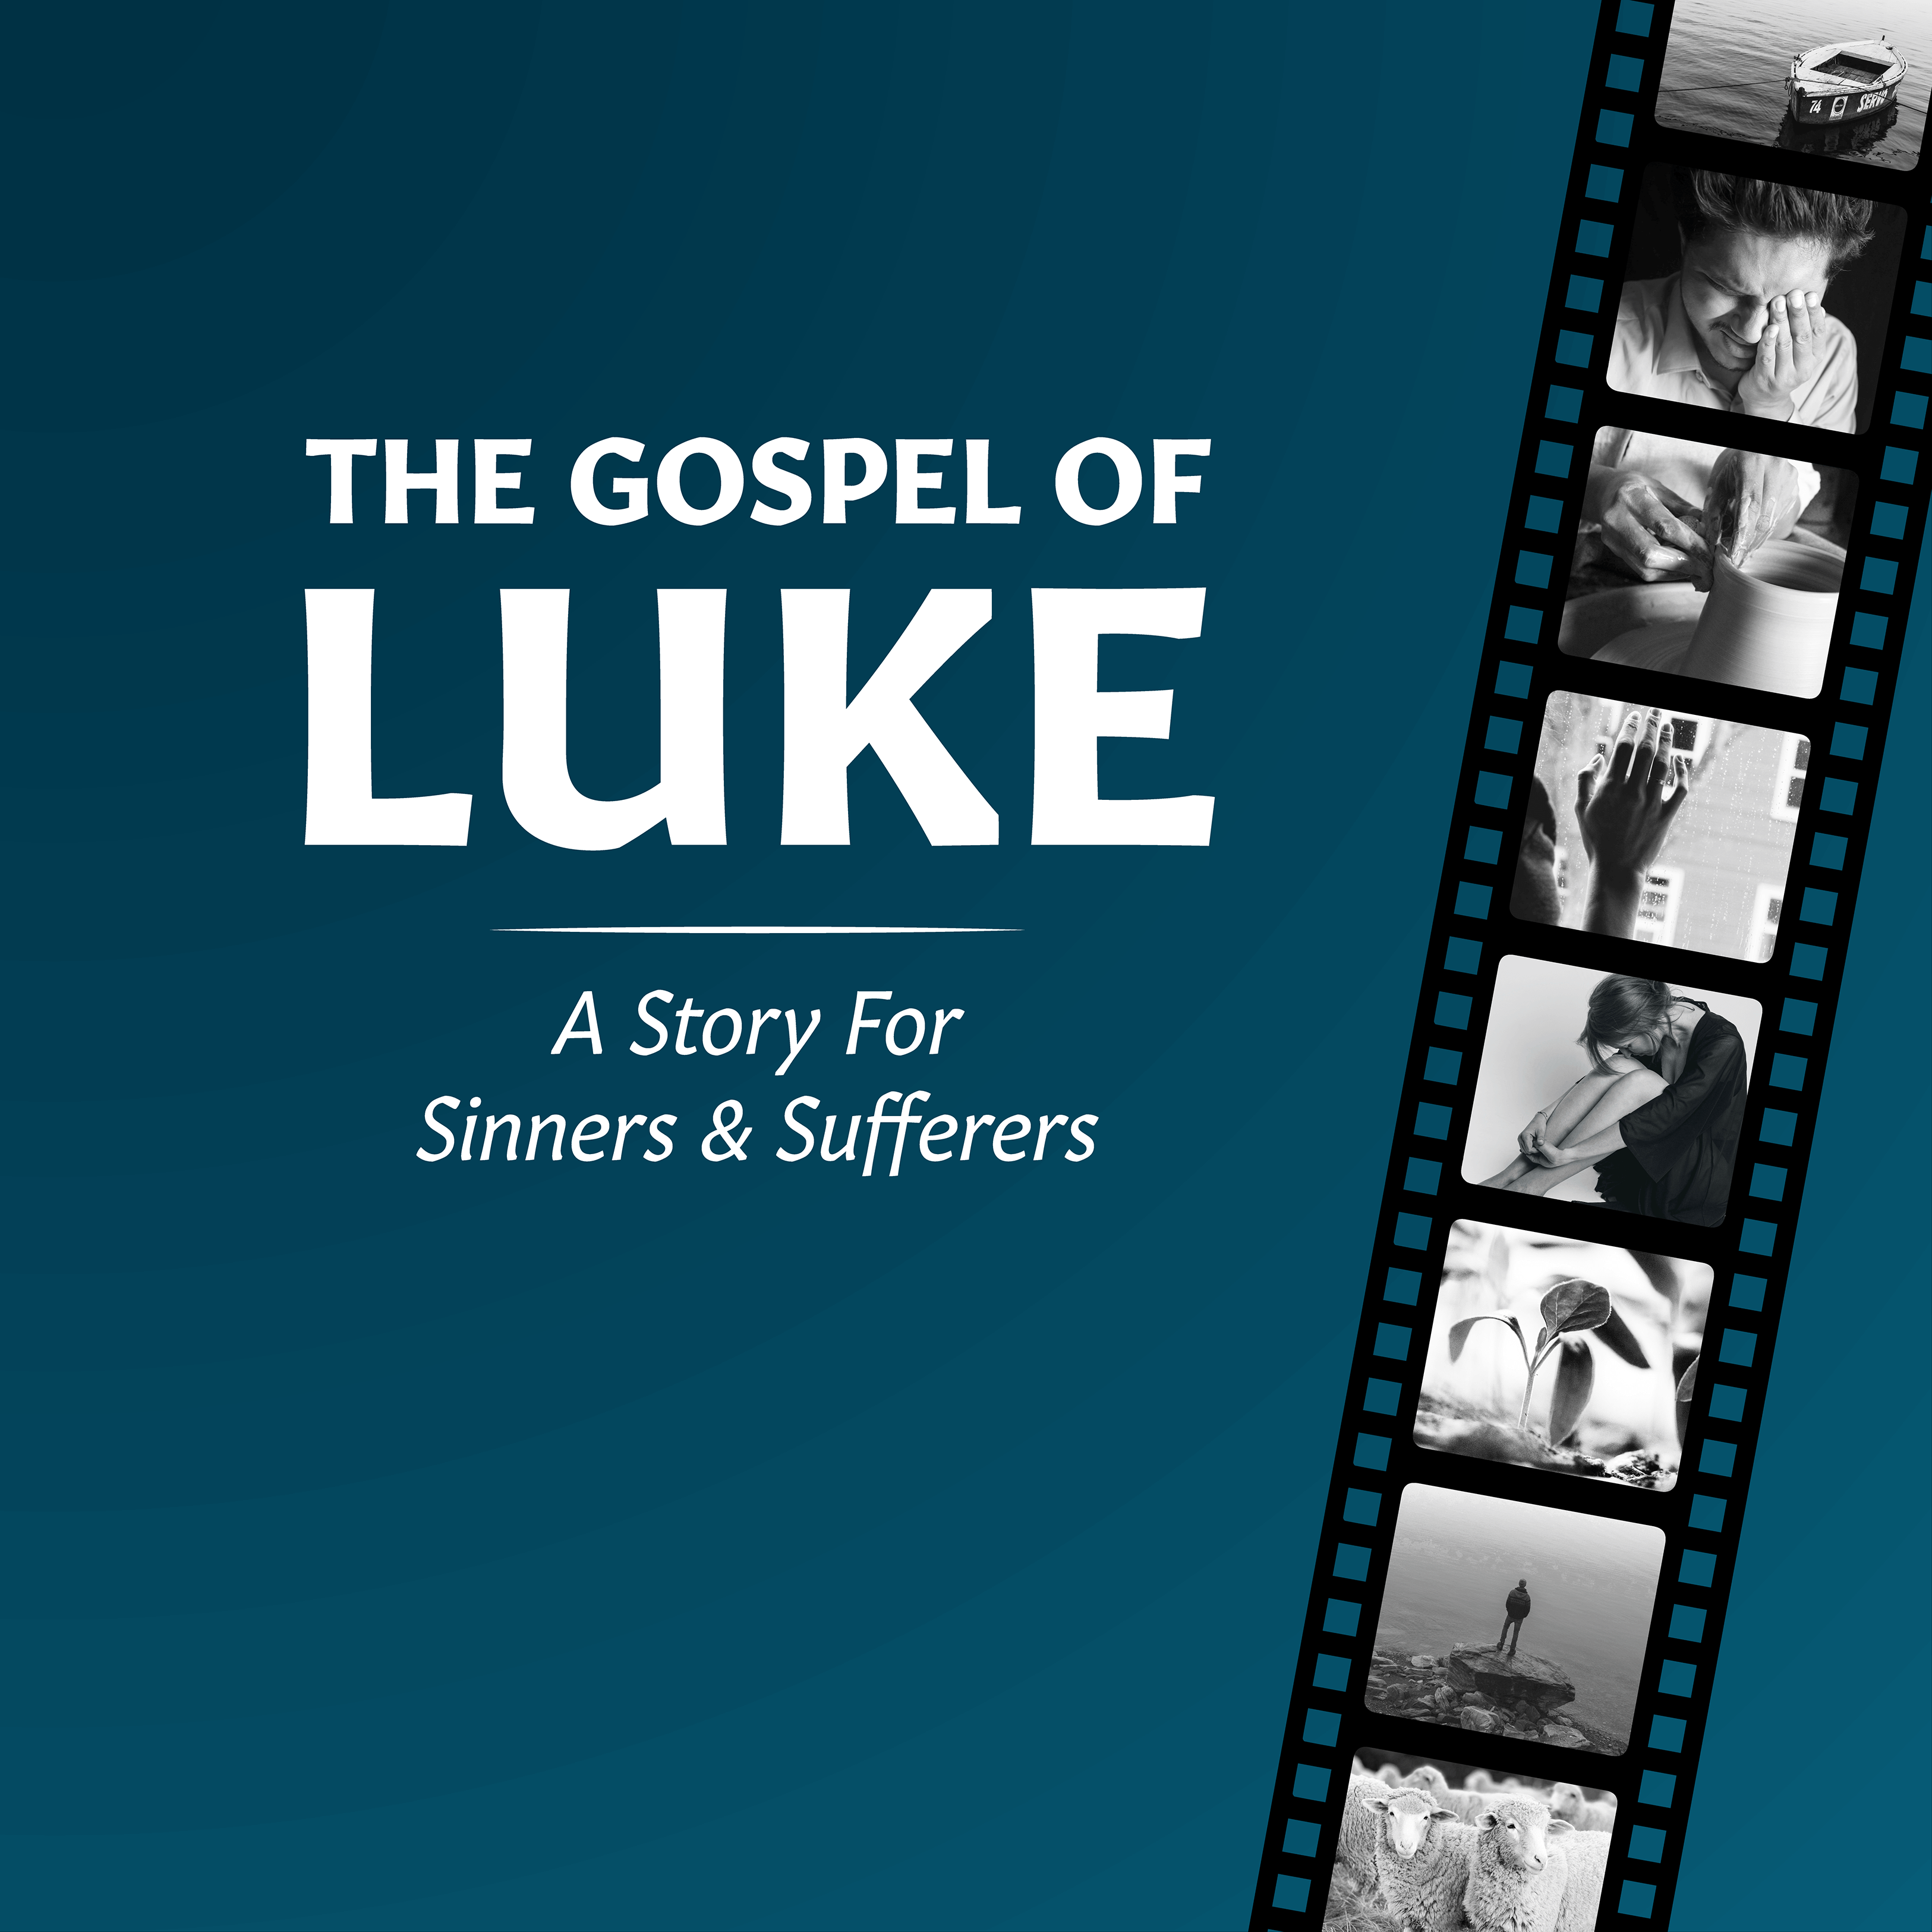 The Gospel of Luke Sermon Series: A Story for Sinners and Sufferers square image with photos depicting stories from the Gospel of Luke